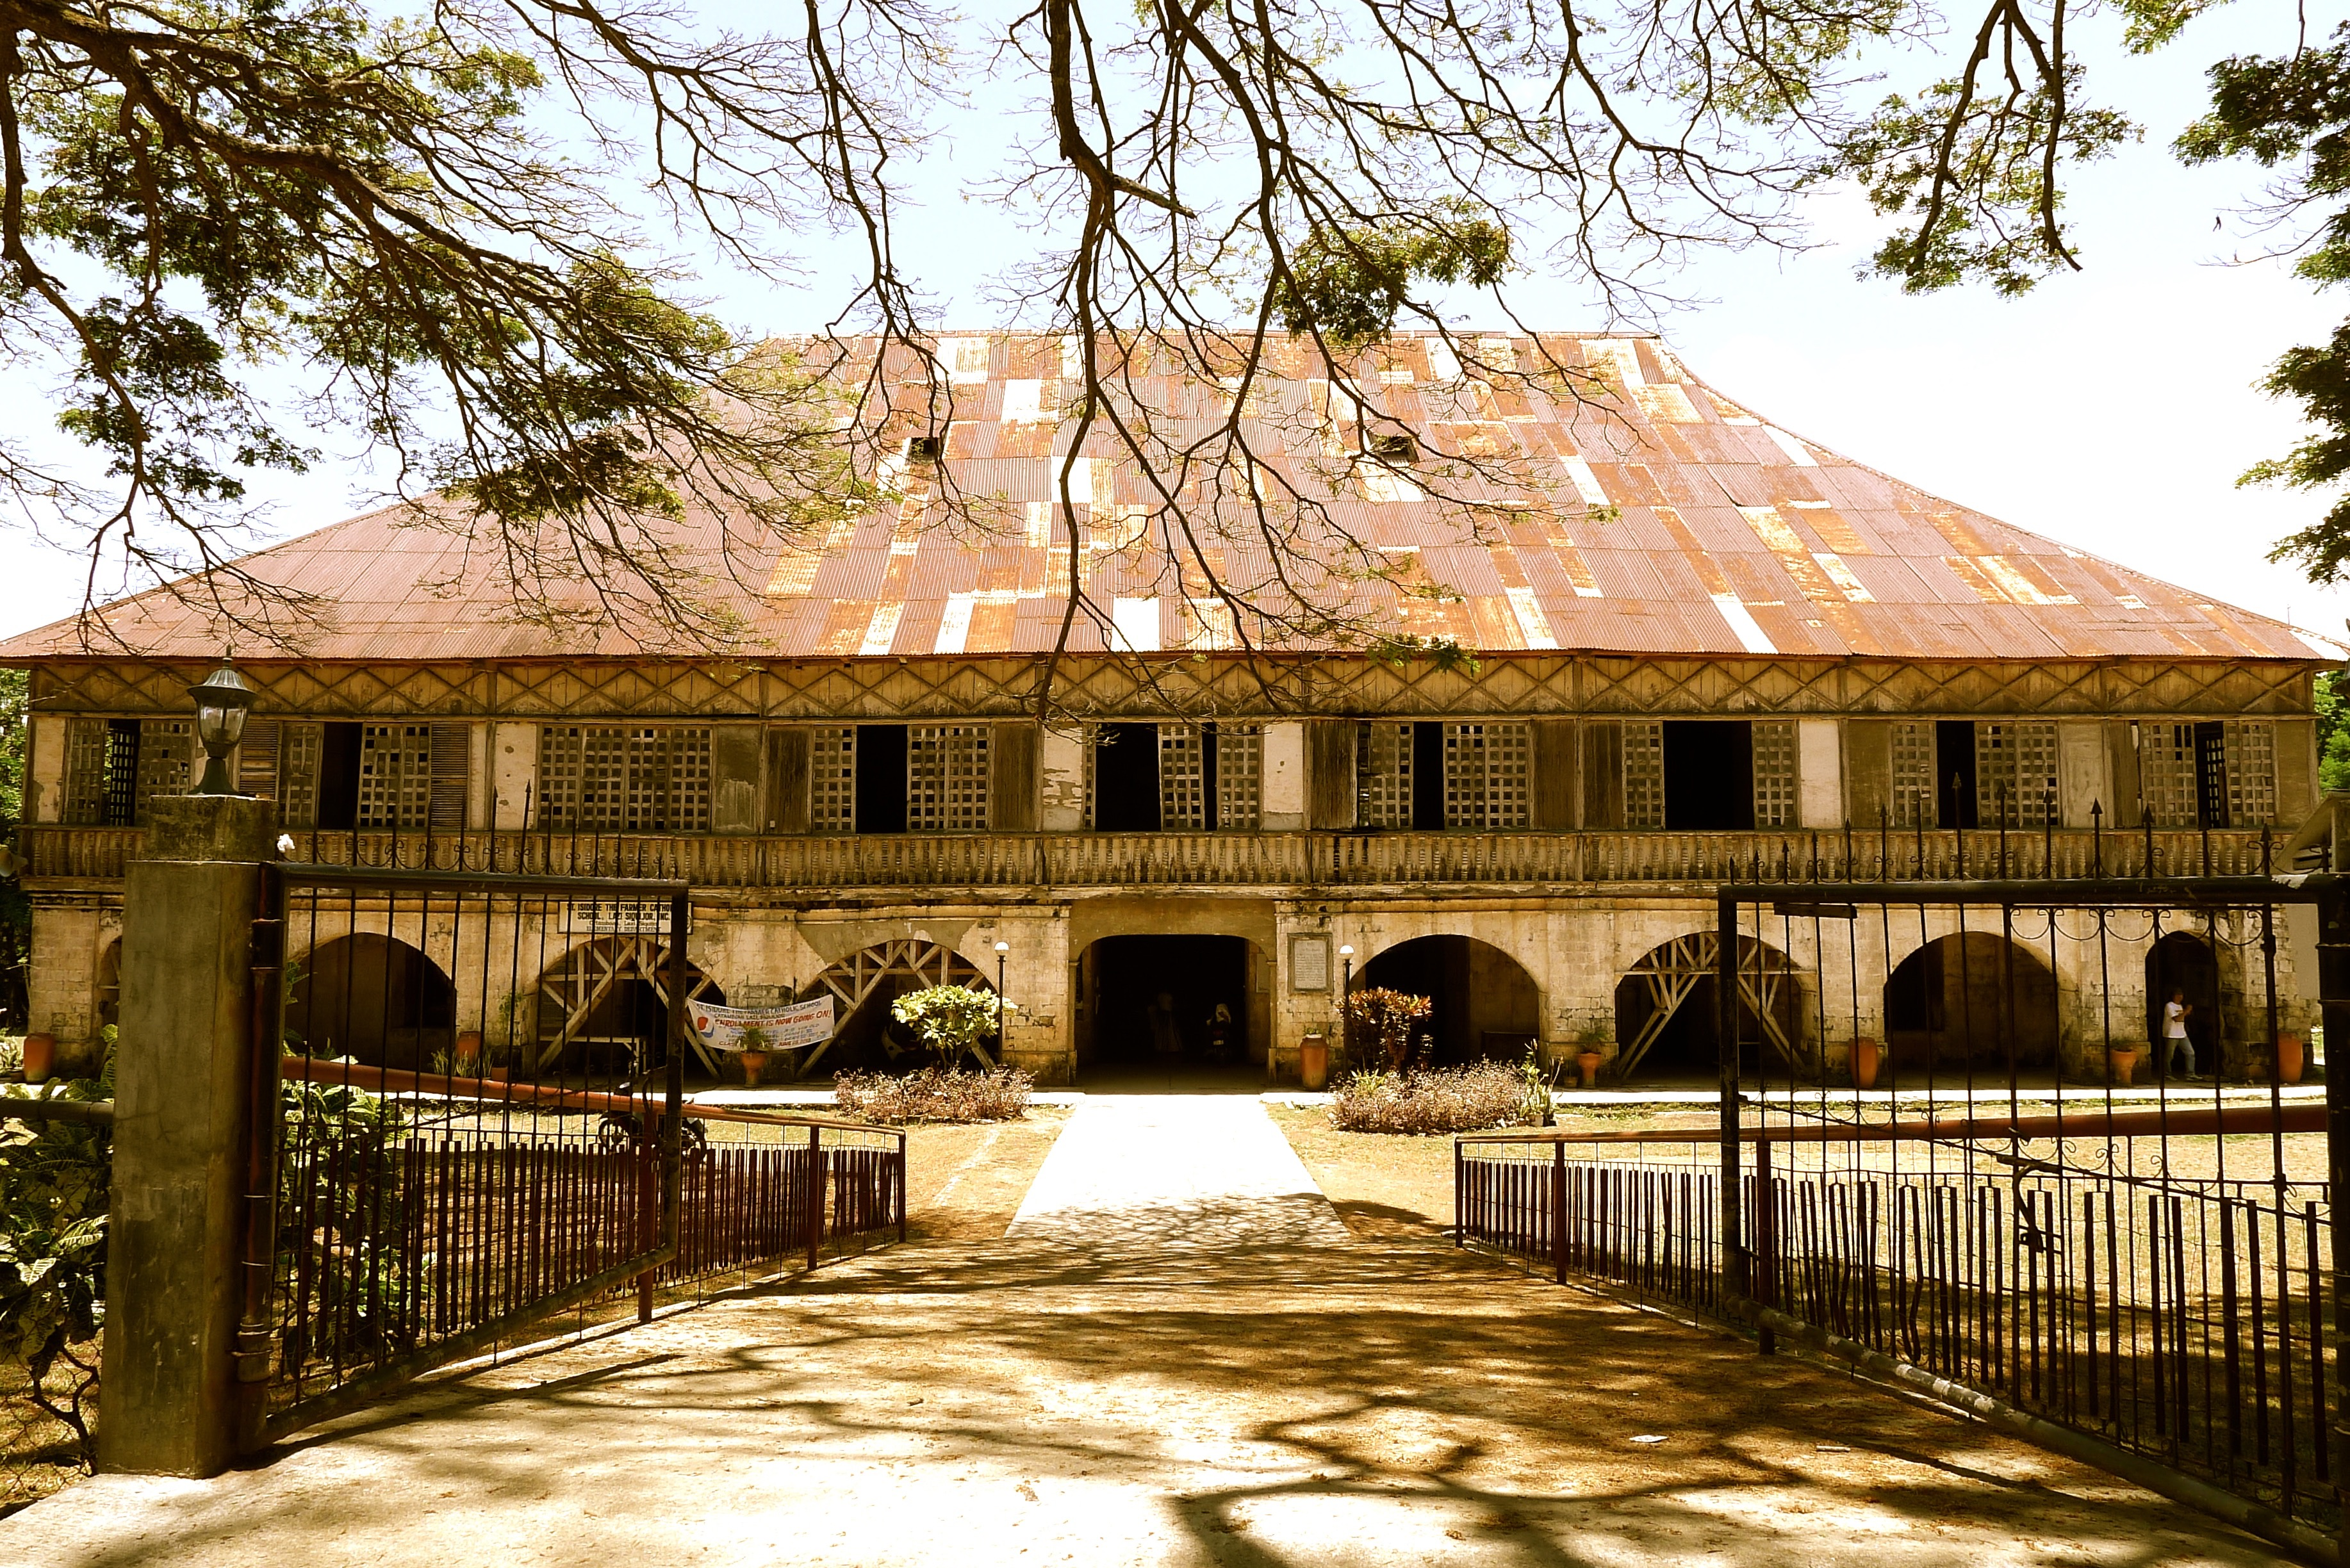 The Lazi Convent is the largest and oldest convent in Asia. Photo: Fr. Jboy Gonzales SJ 14 April 2015